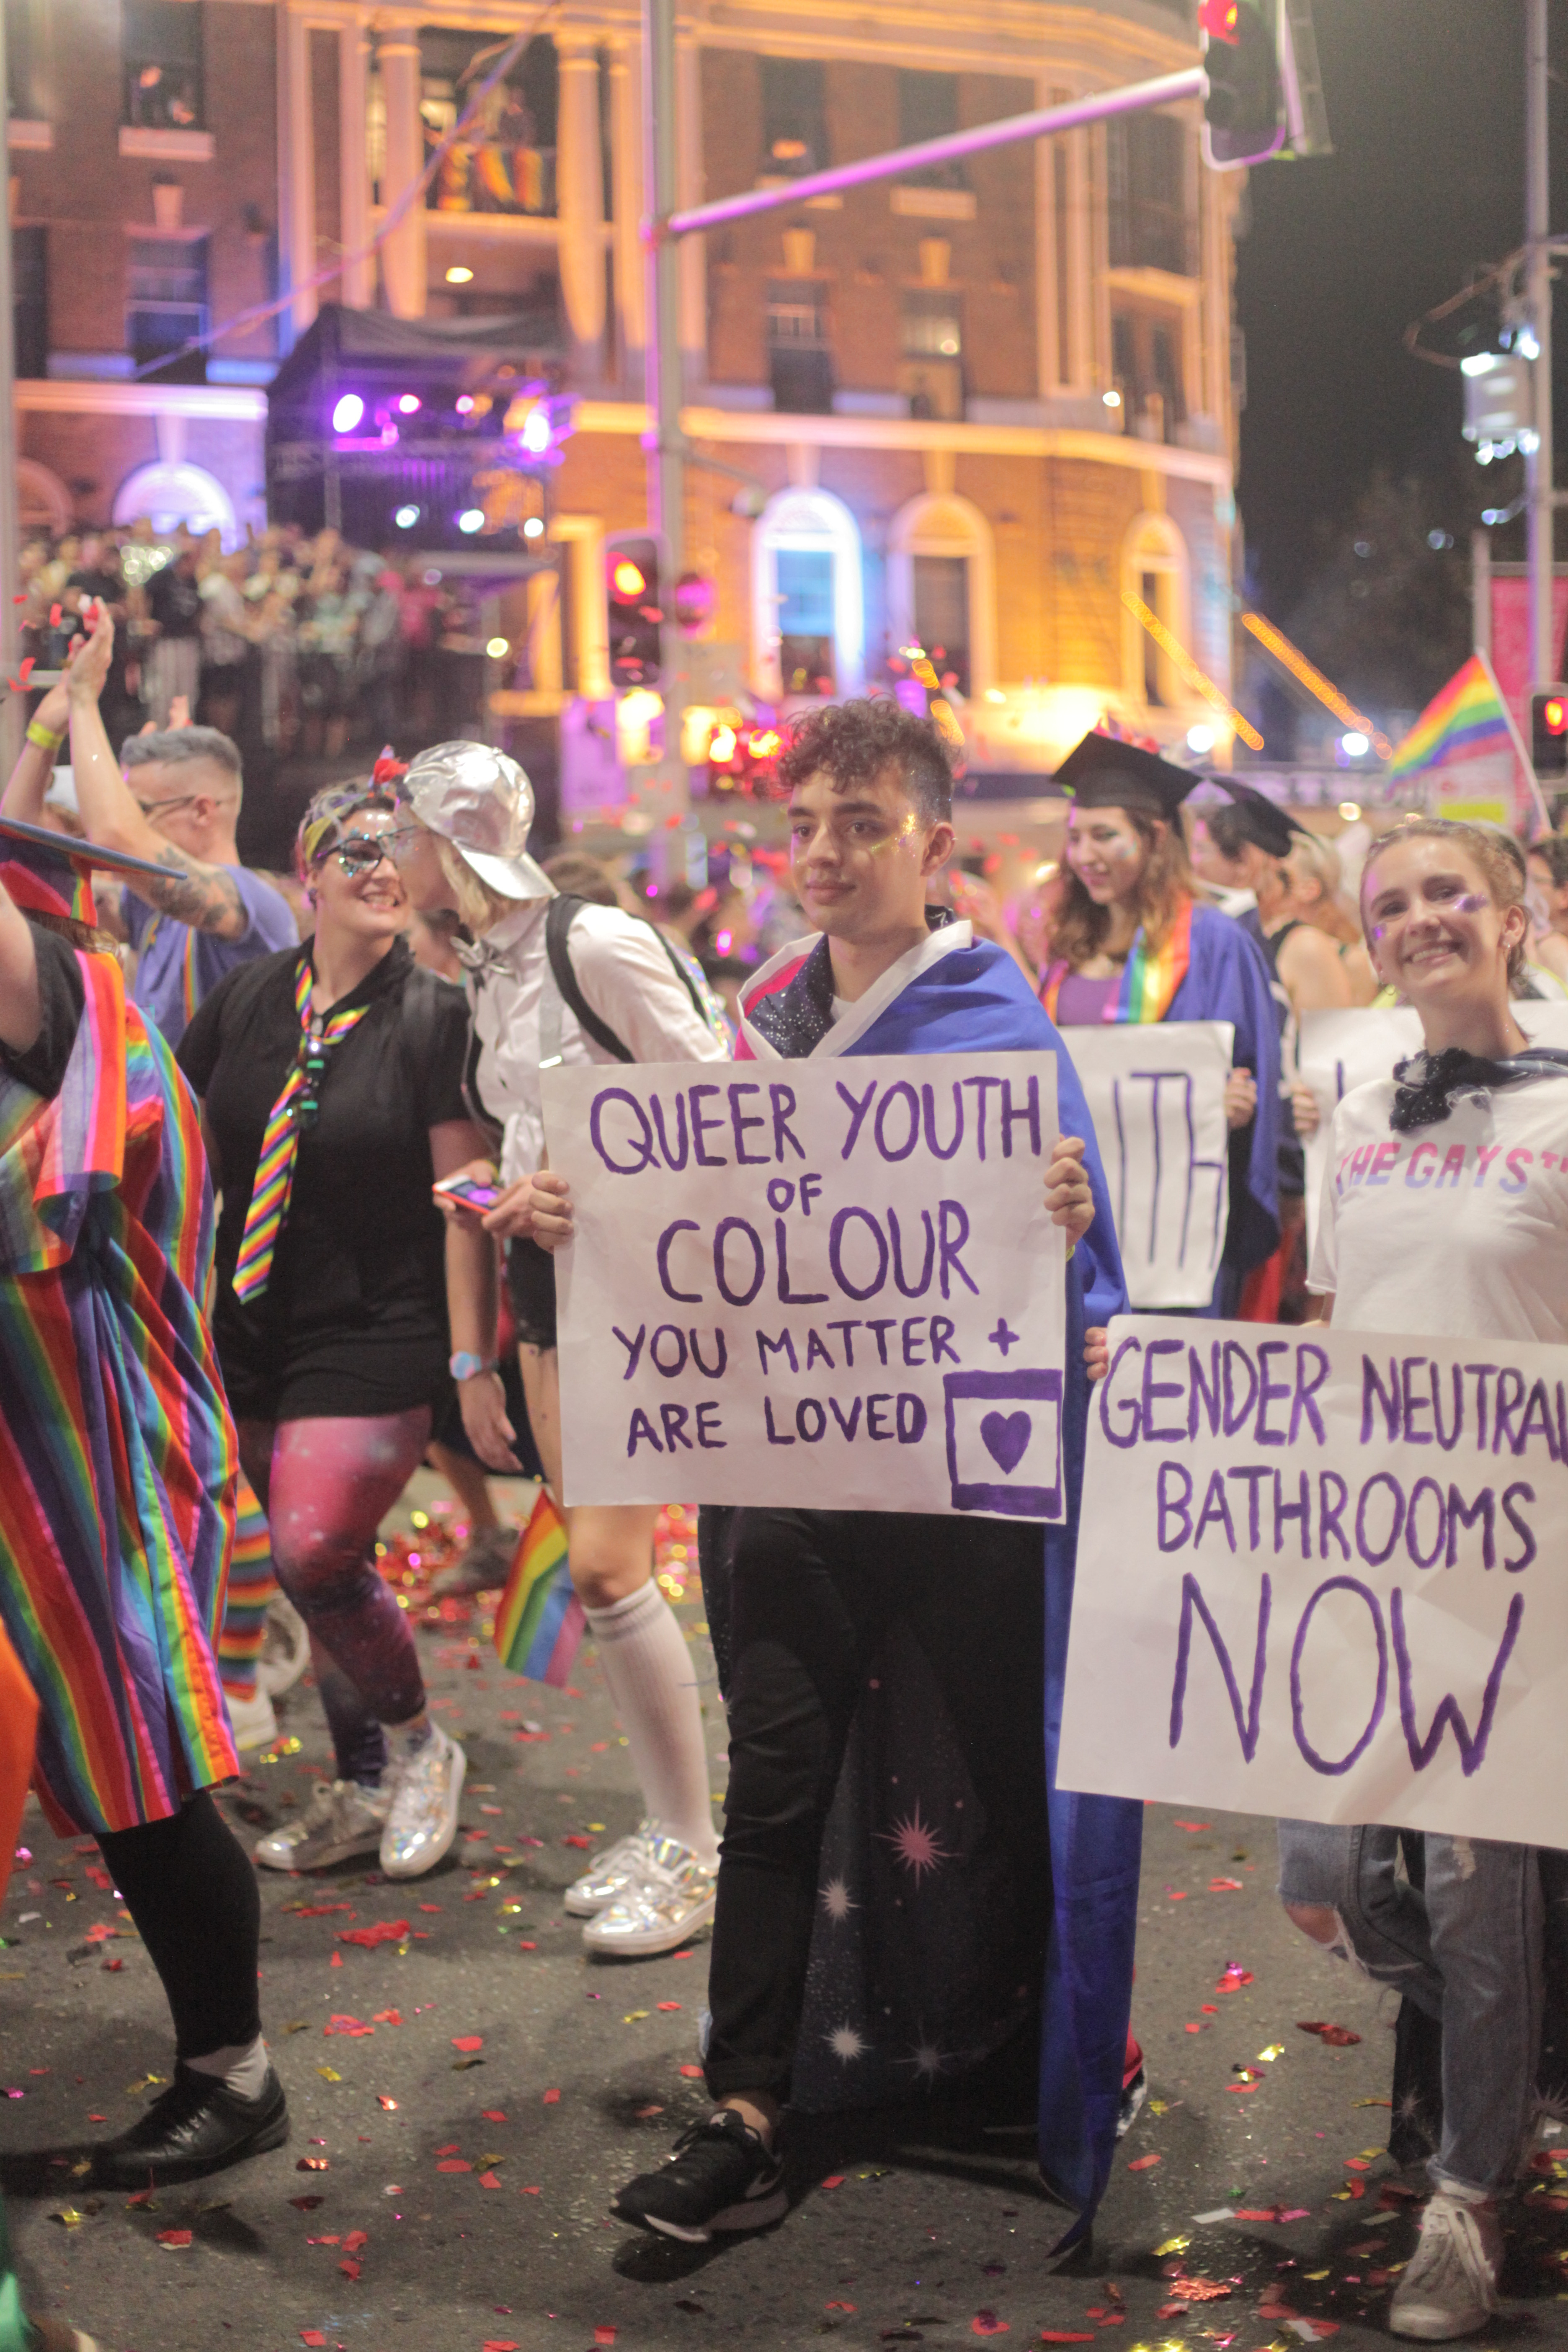 Queer youth sign